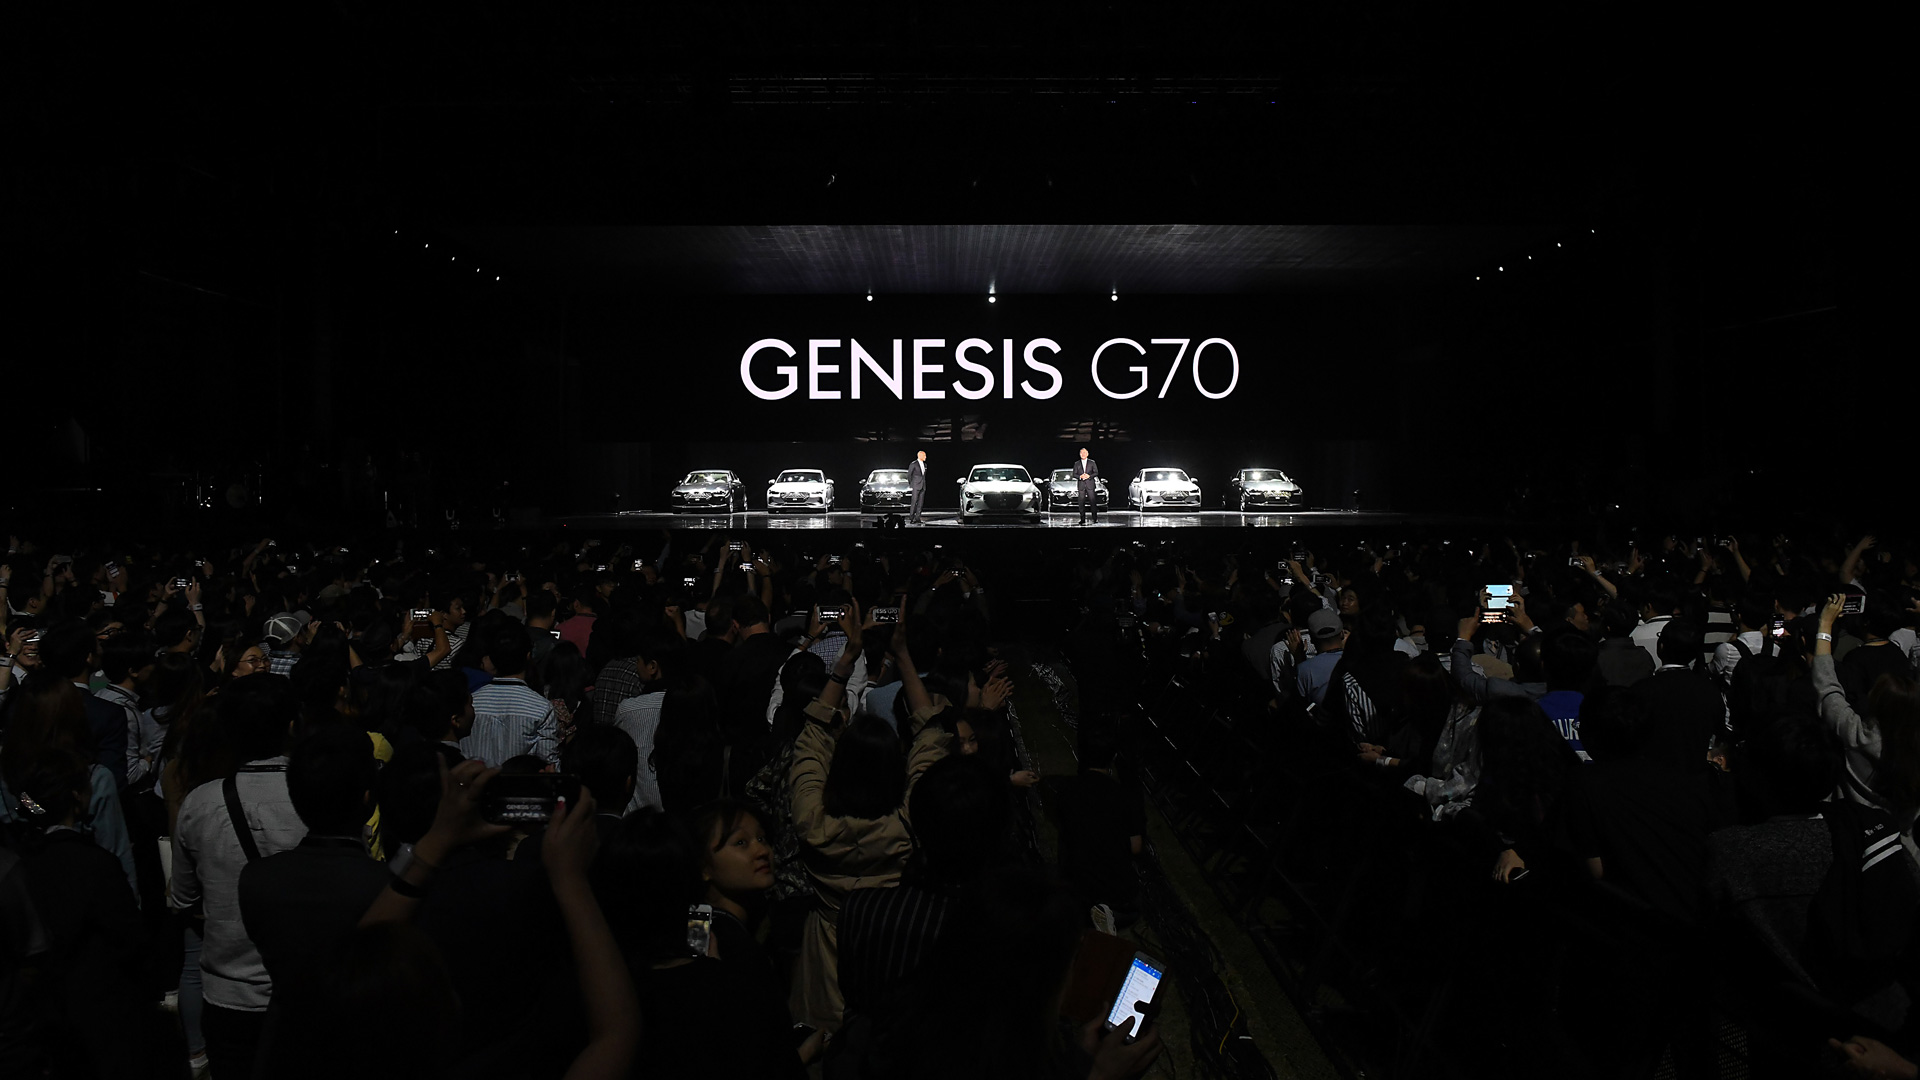 Seven Genesis G70 models are standing on stage in front of a screen.